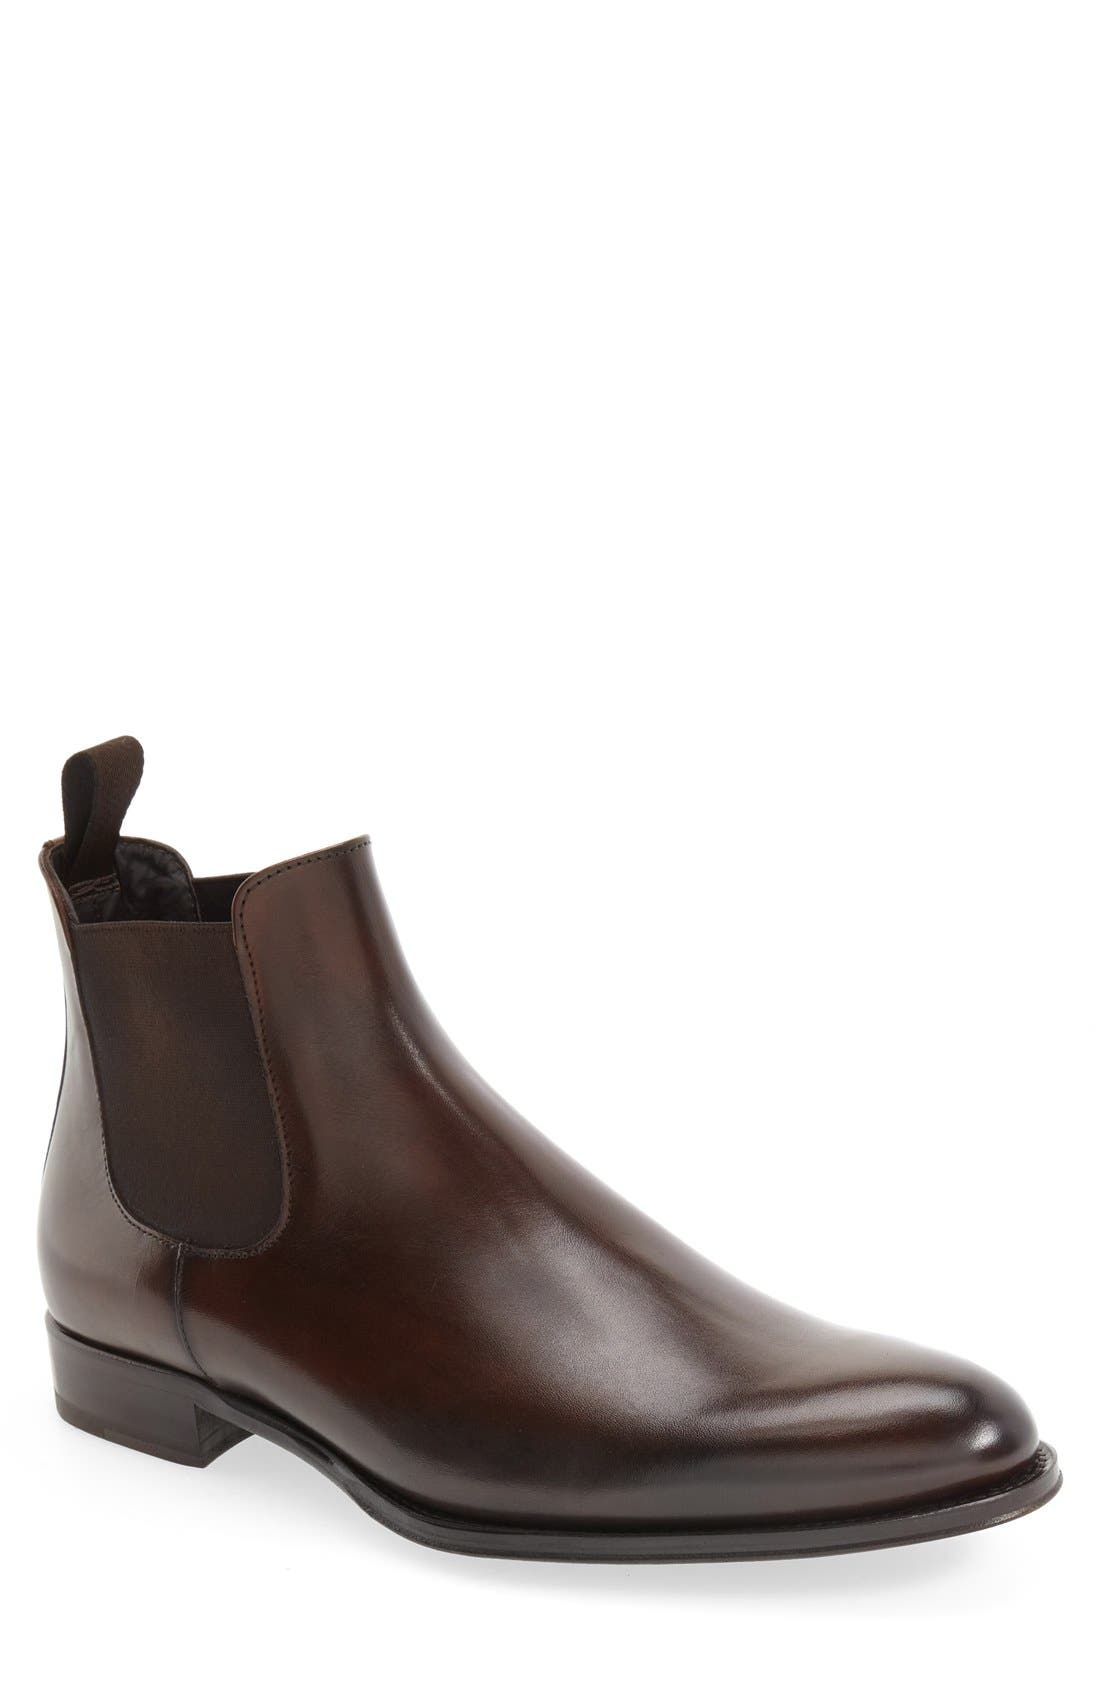 Main Image - To Boot New York Toby Chelsea Boot (Men)